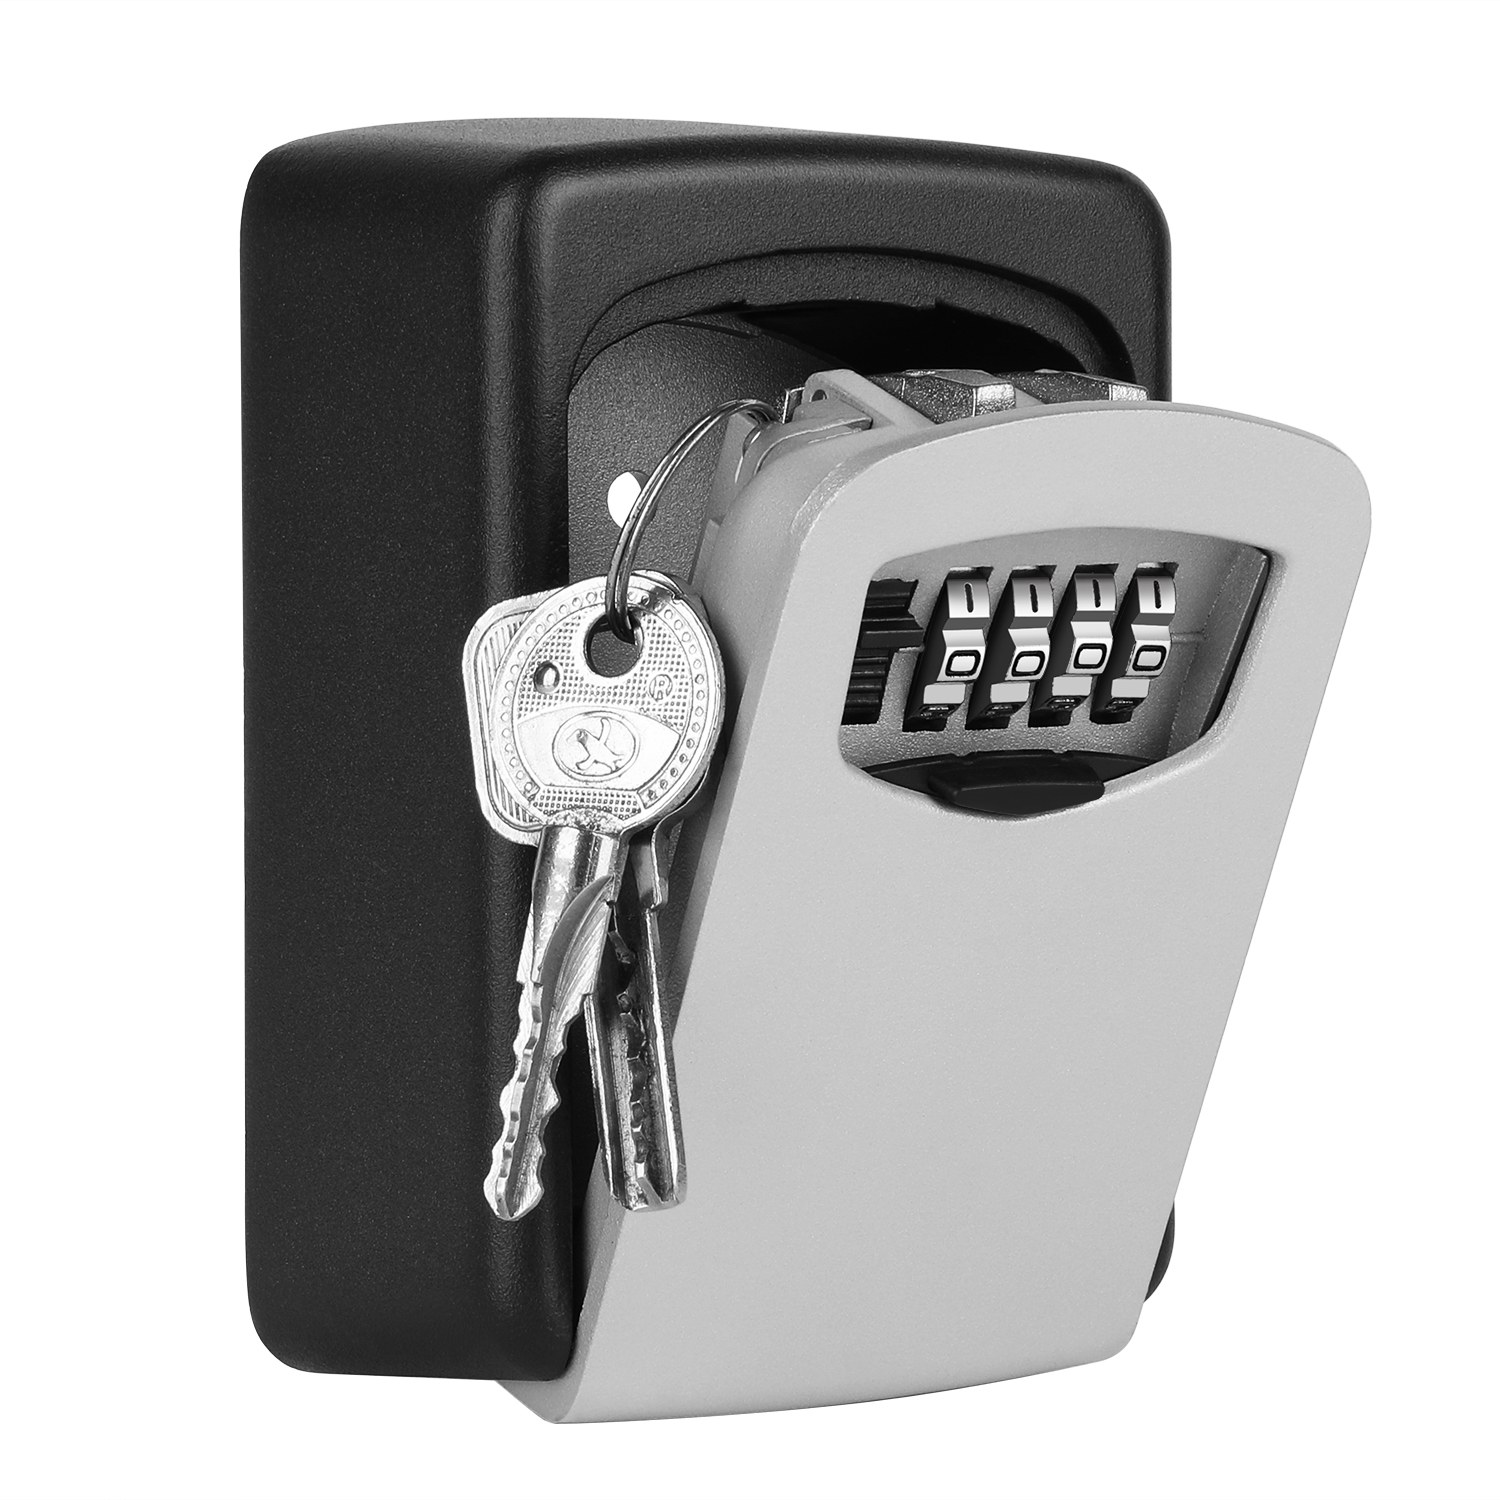 4 Digit Combination Key Lock Box Hide Key Safe Lock Box for Outdoor Wall Mounted Key Storage Boxes Every Trade